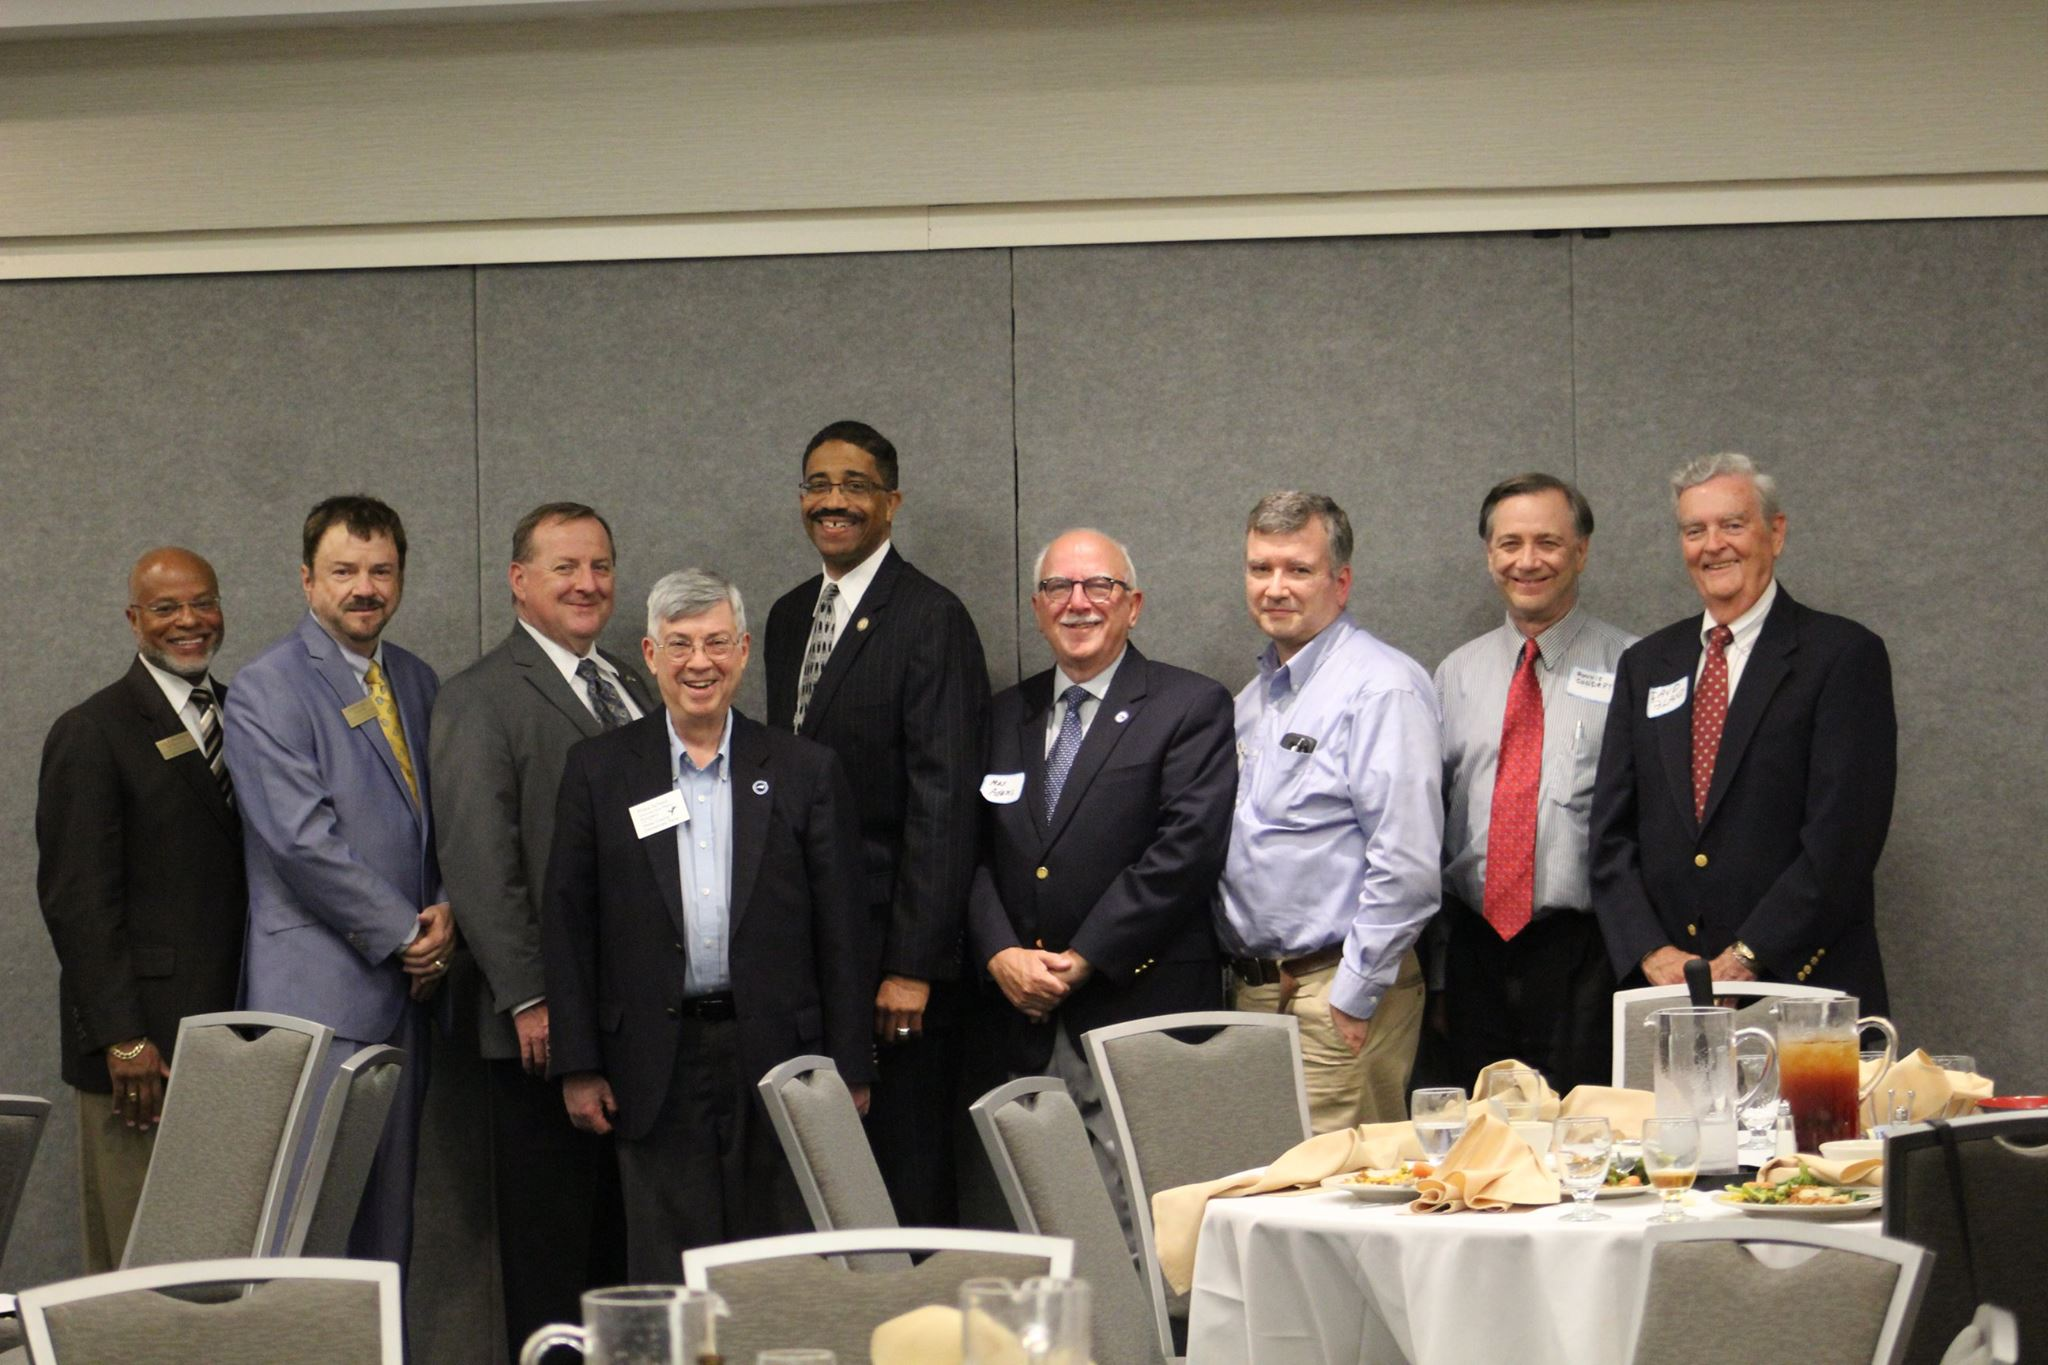 Former Presidents Paul Anderson, Steven Hill, Rodney Maddox, Mike Schaul, Justice Michael Morgan, President Max Adams, Former Presidents Henry Jarrett, Ronald Condrey, and David Bland